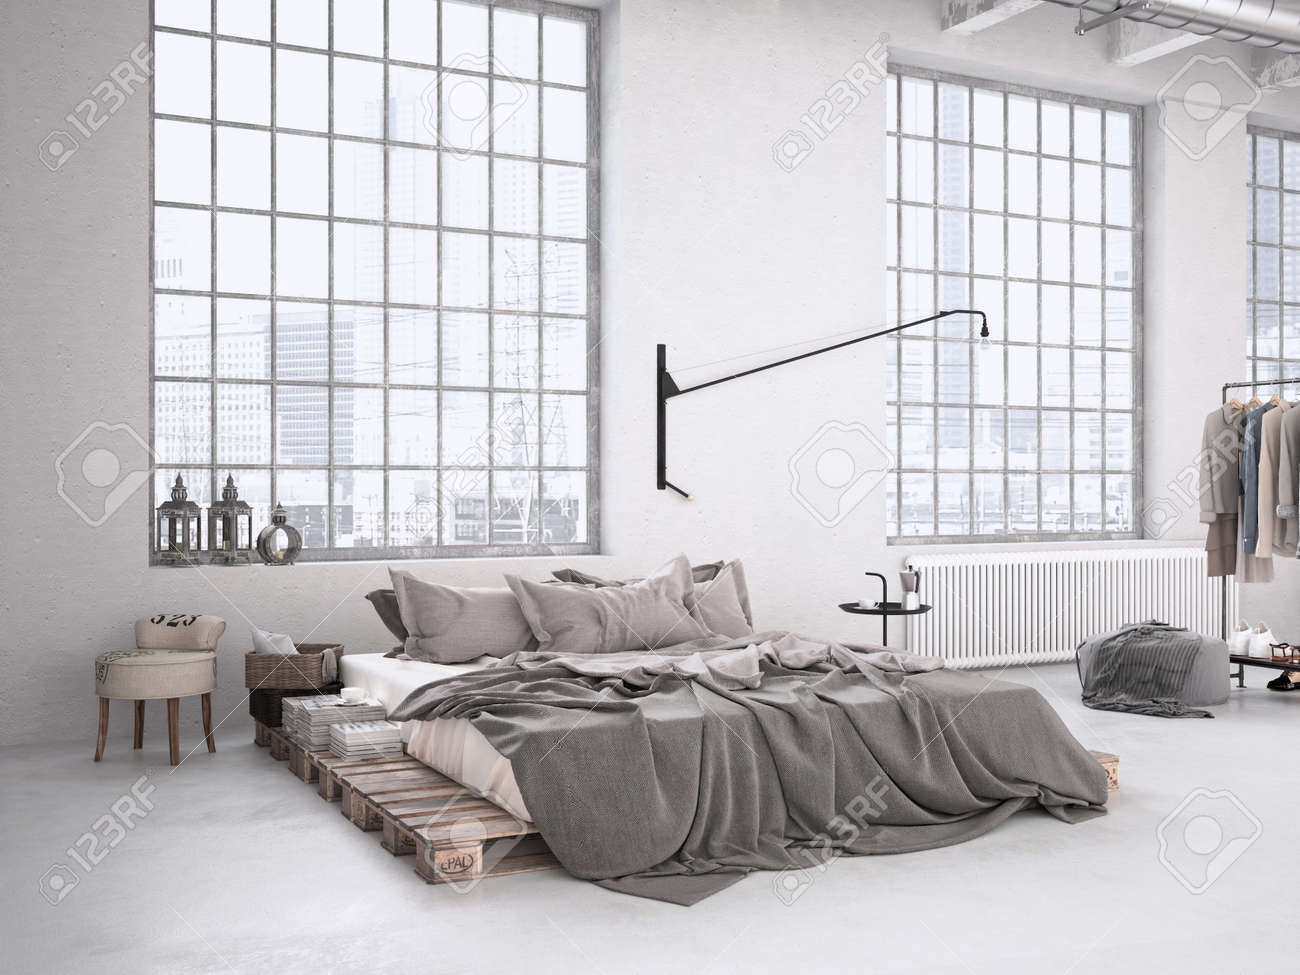 Modern Industrial Bedroom In A Loft 3d Rendering Stock Photo